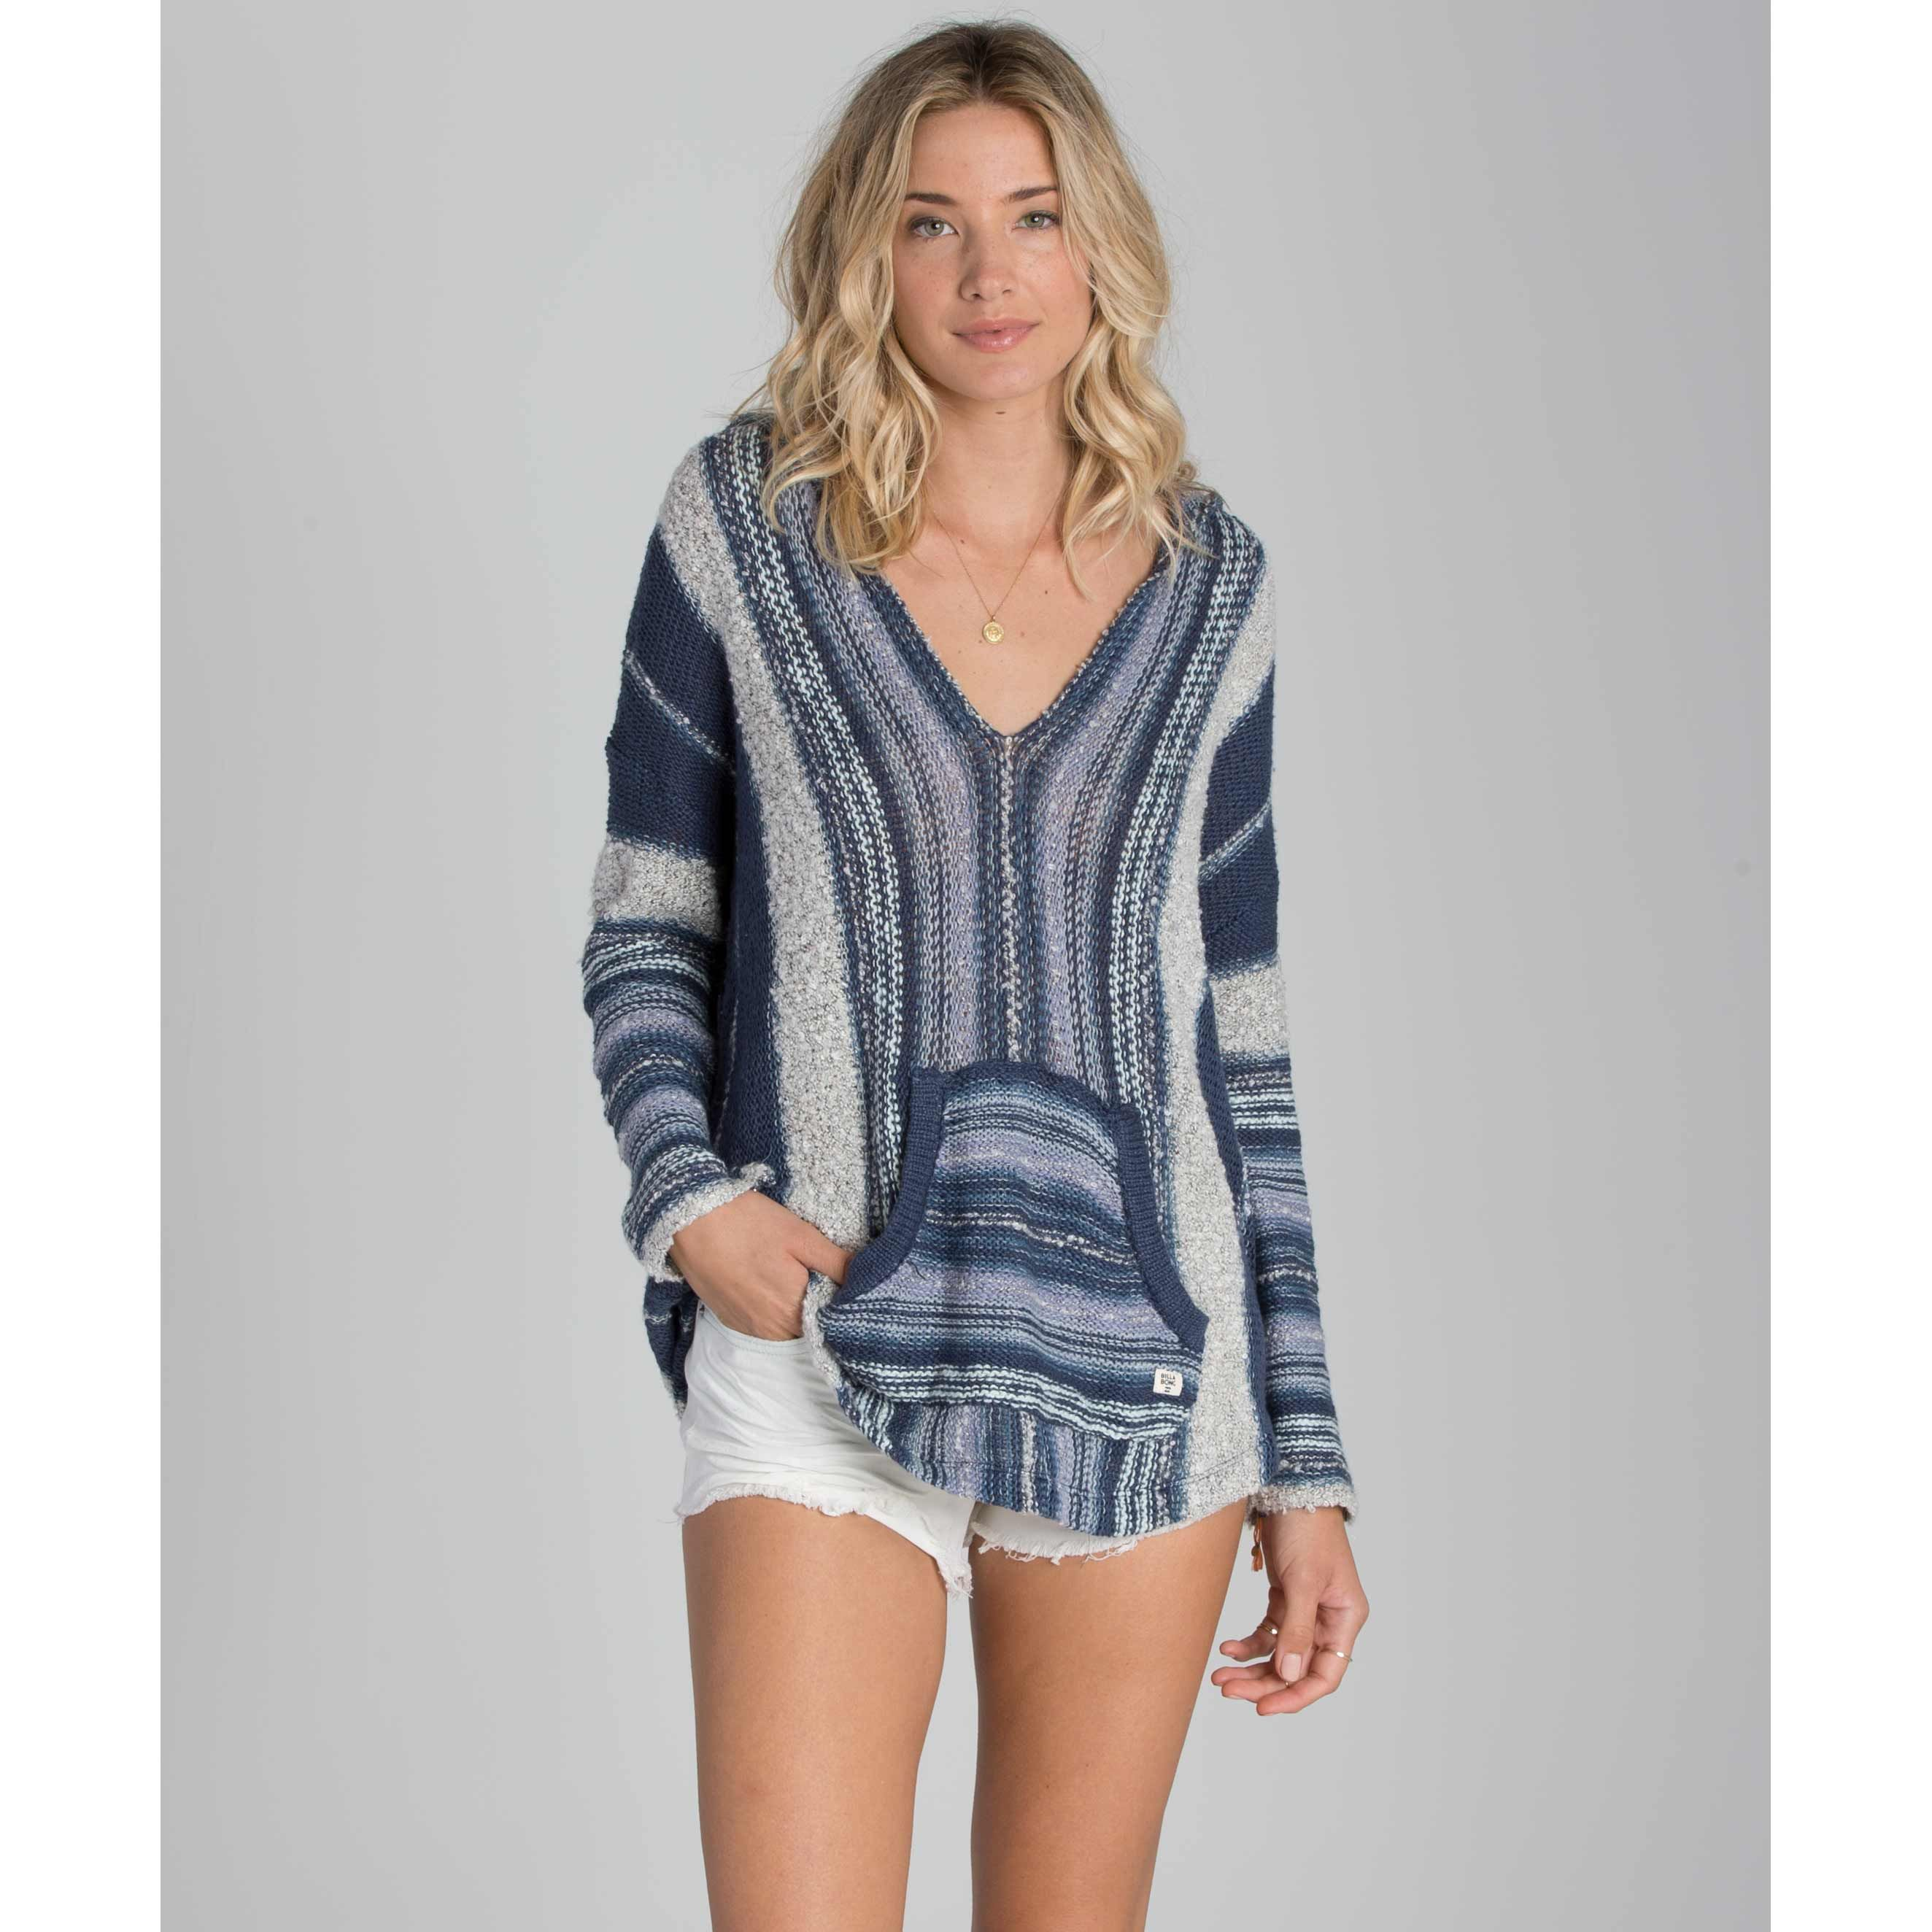 Shop the best selection of womenswear including women's bikinis, dresses, kimonos and wetsuits at Billabong.com. Free shipping and returns, no minimum.